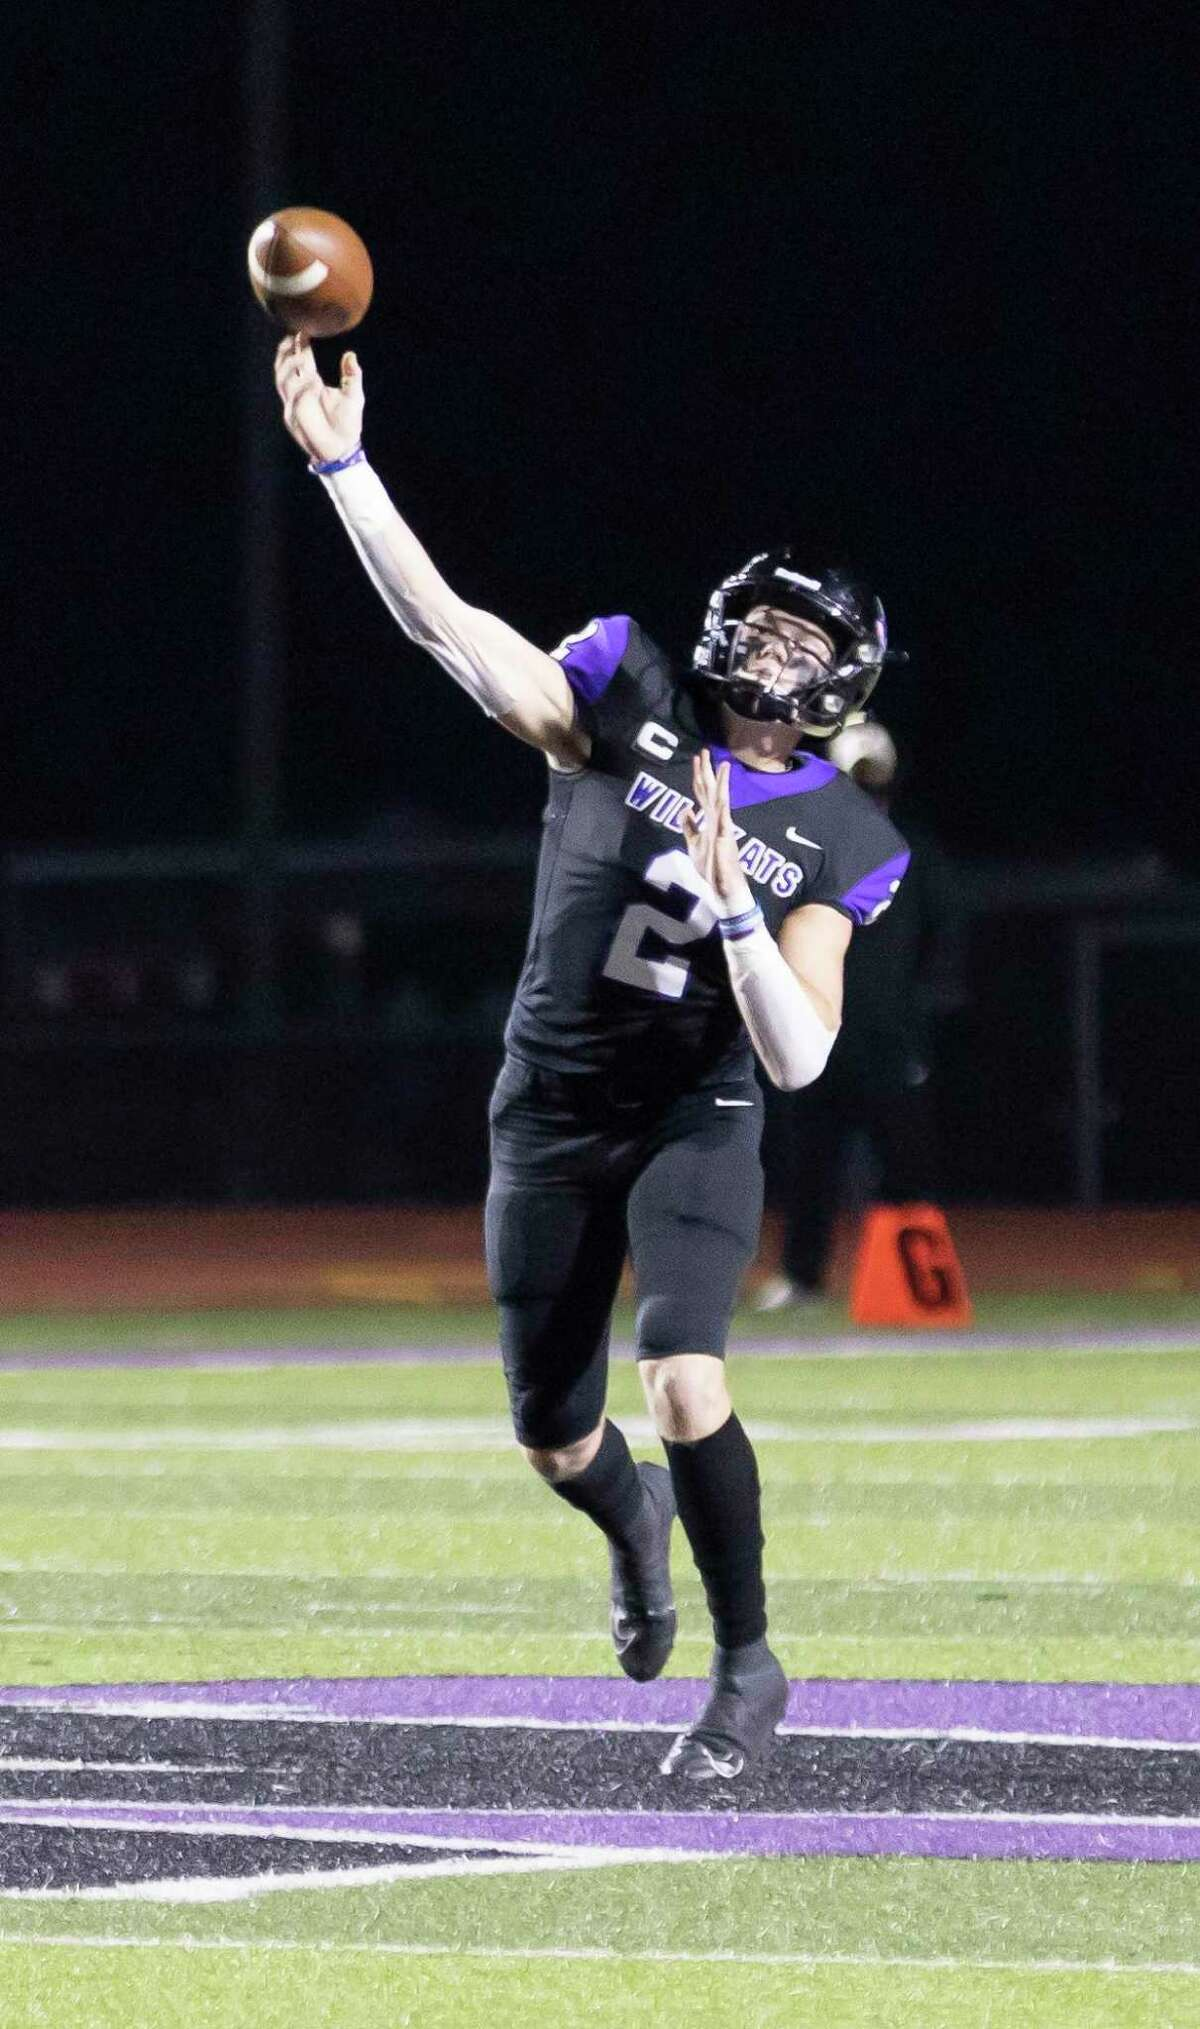 Willis quarterback Steele Bardwell (2) passes the ball during the first quarter of a district 13-6A football game against The Woodlands at Berton A. Yates Stadium in Willis, Friday, Oct. 30, 2020.